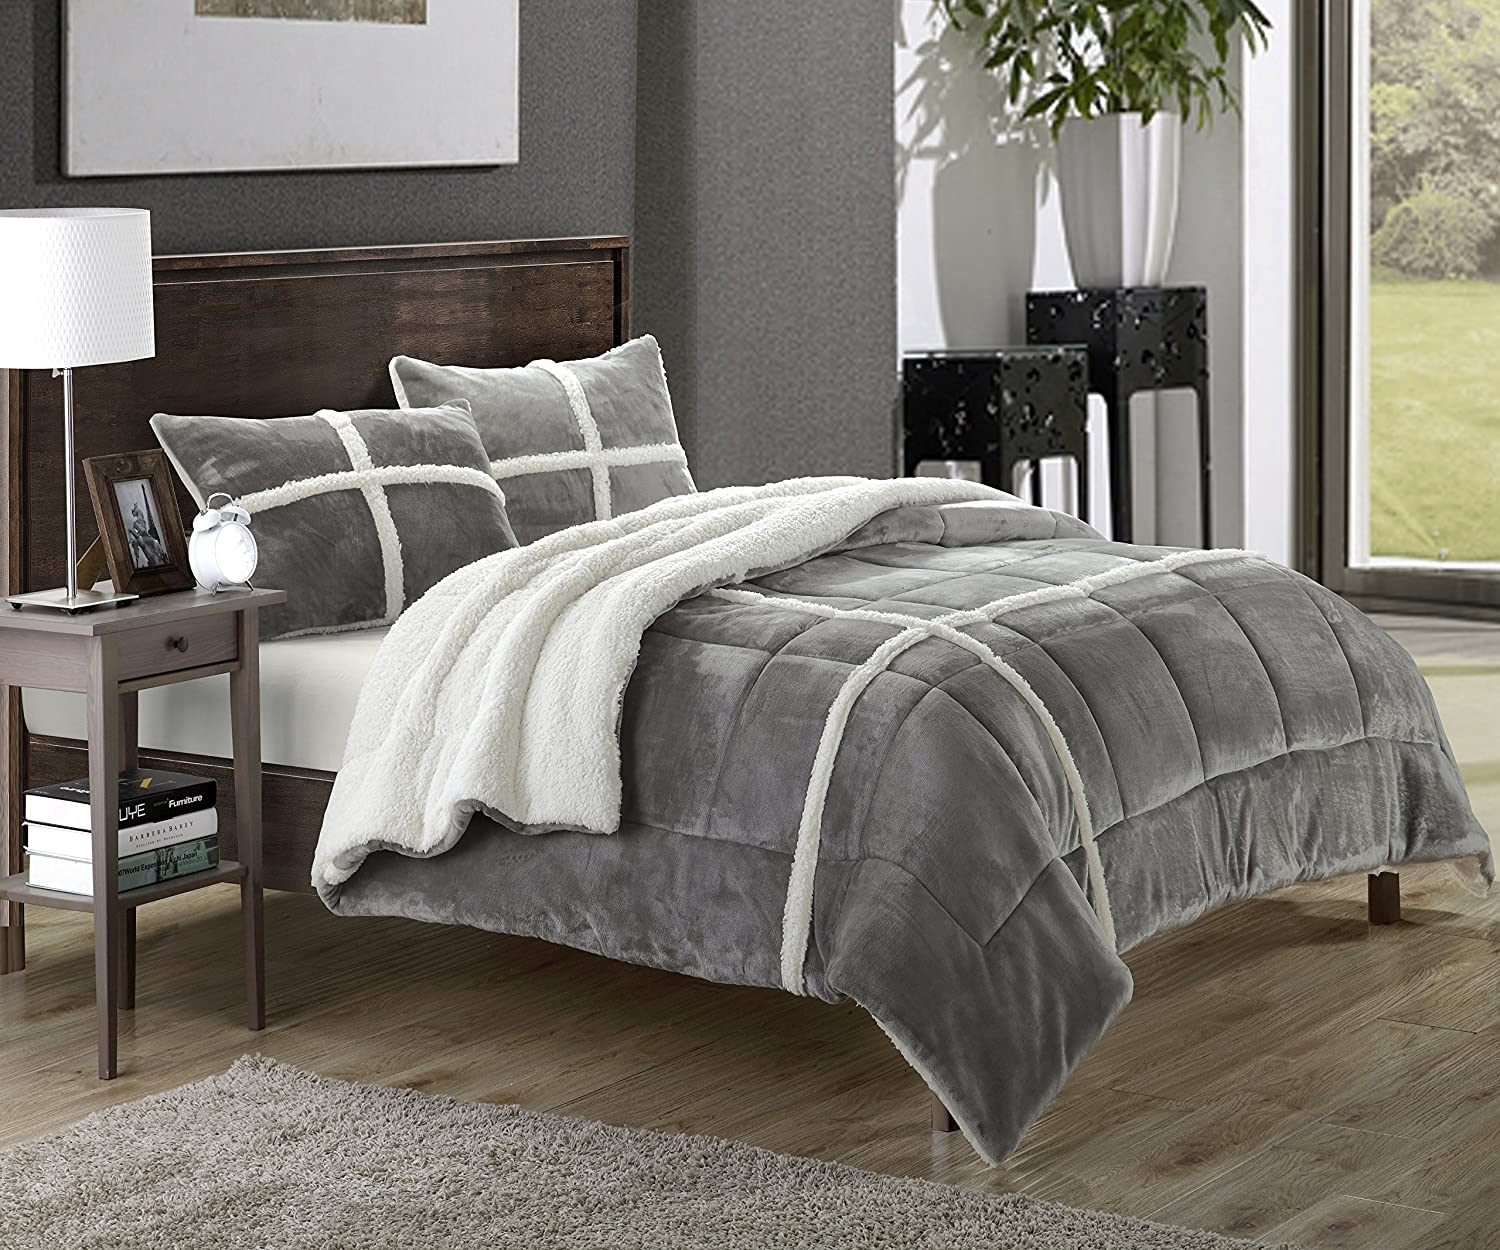 Comforter Silvers: Black And Silver Bedding Sets